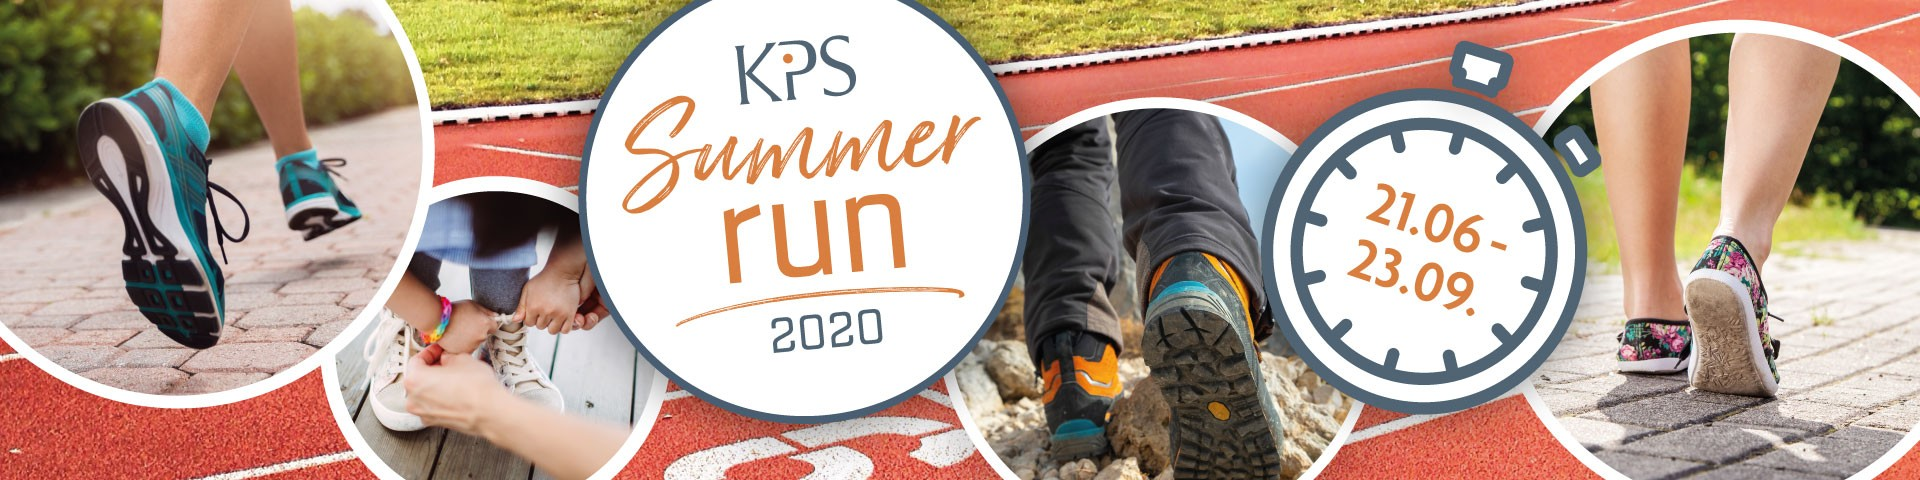 KPS Summer Run 2020